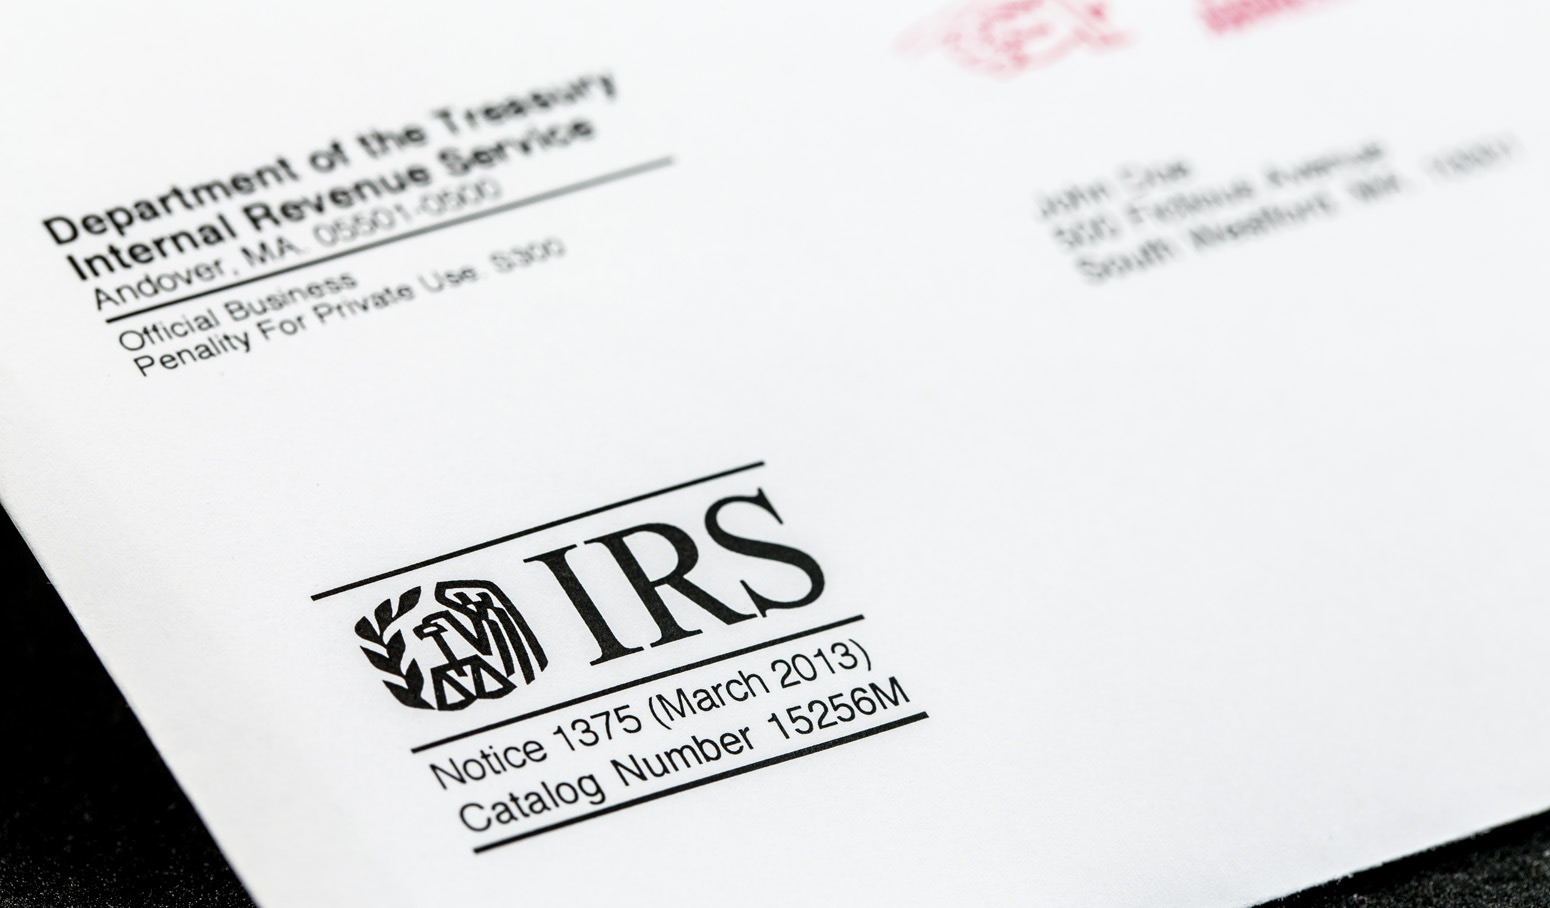 MITRE improves IRS taxpayer correspondence